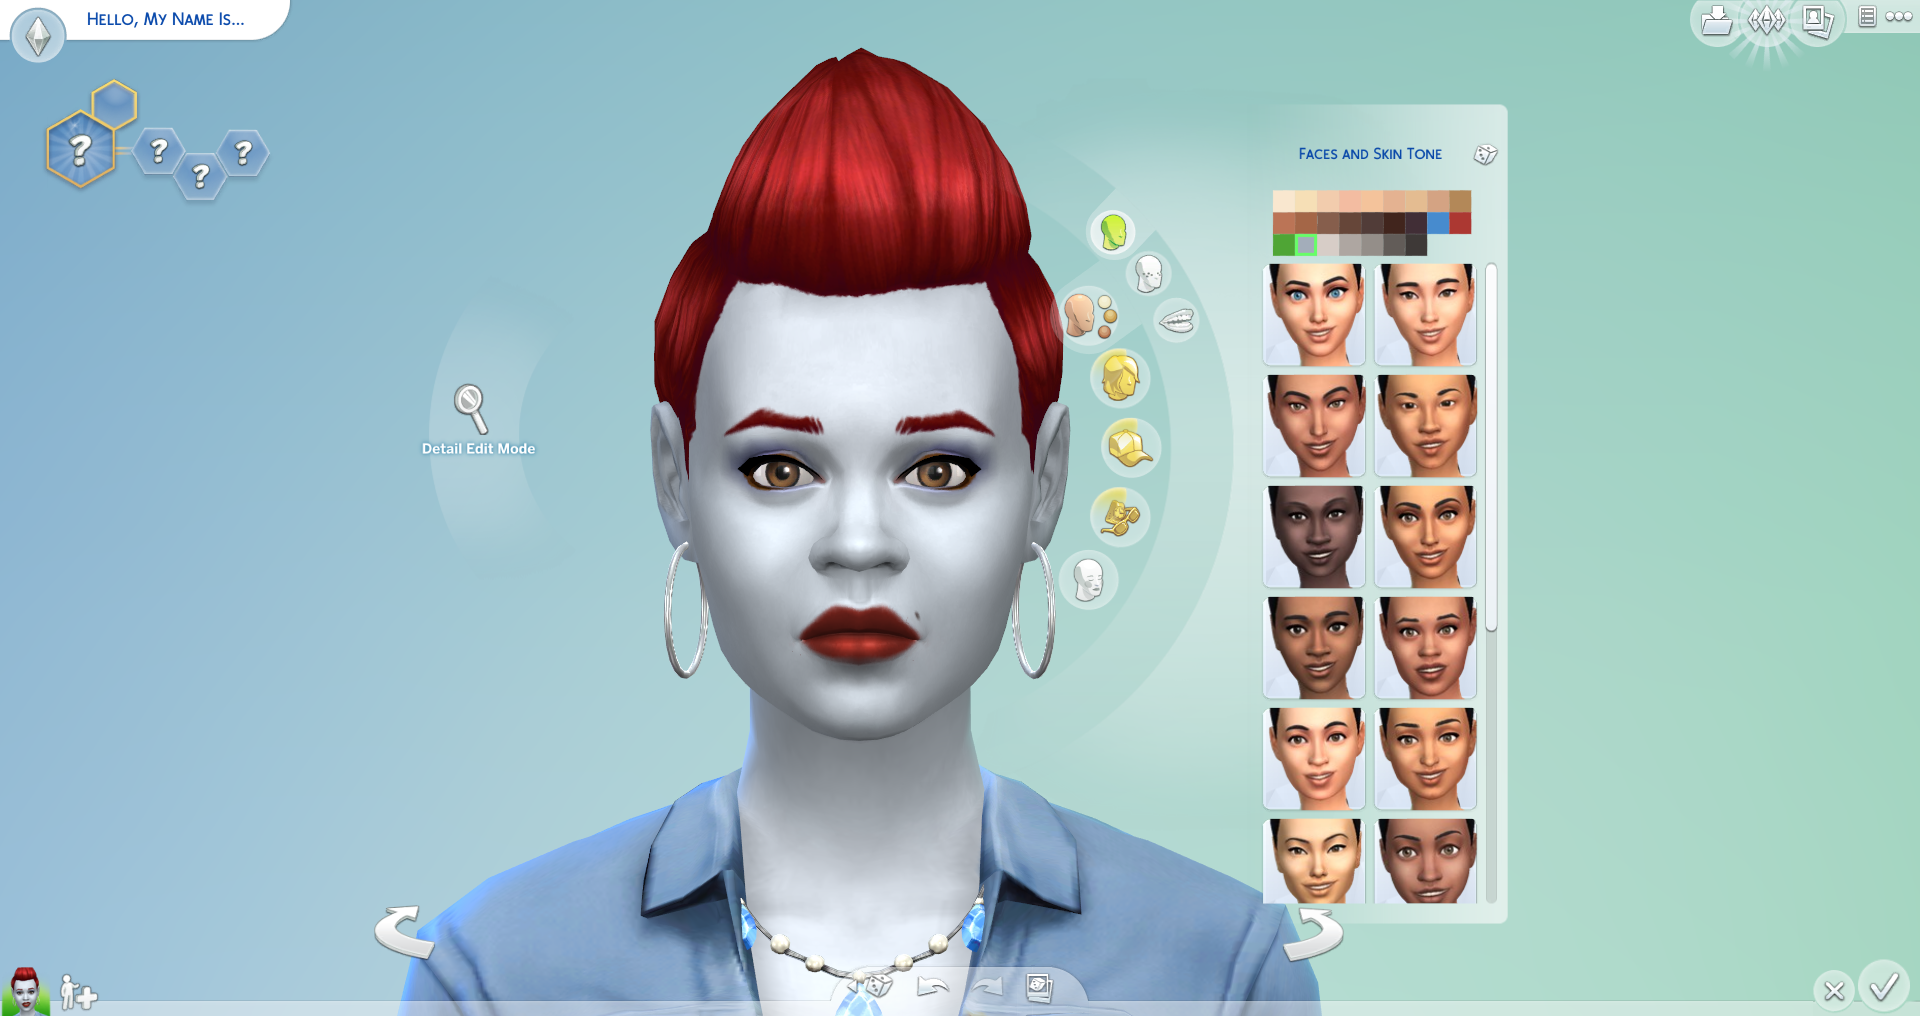 Upon Entering Createasim, You Now Have A Six Brand New Skin Tone Colors  To Choose From When Customizing Your Sims Six Shades Of Greyish